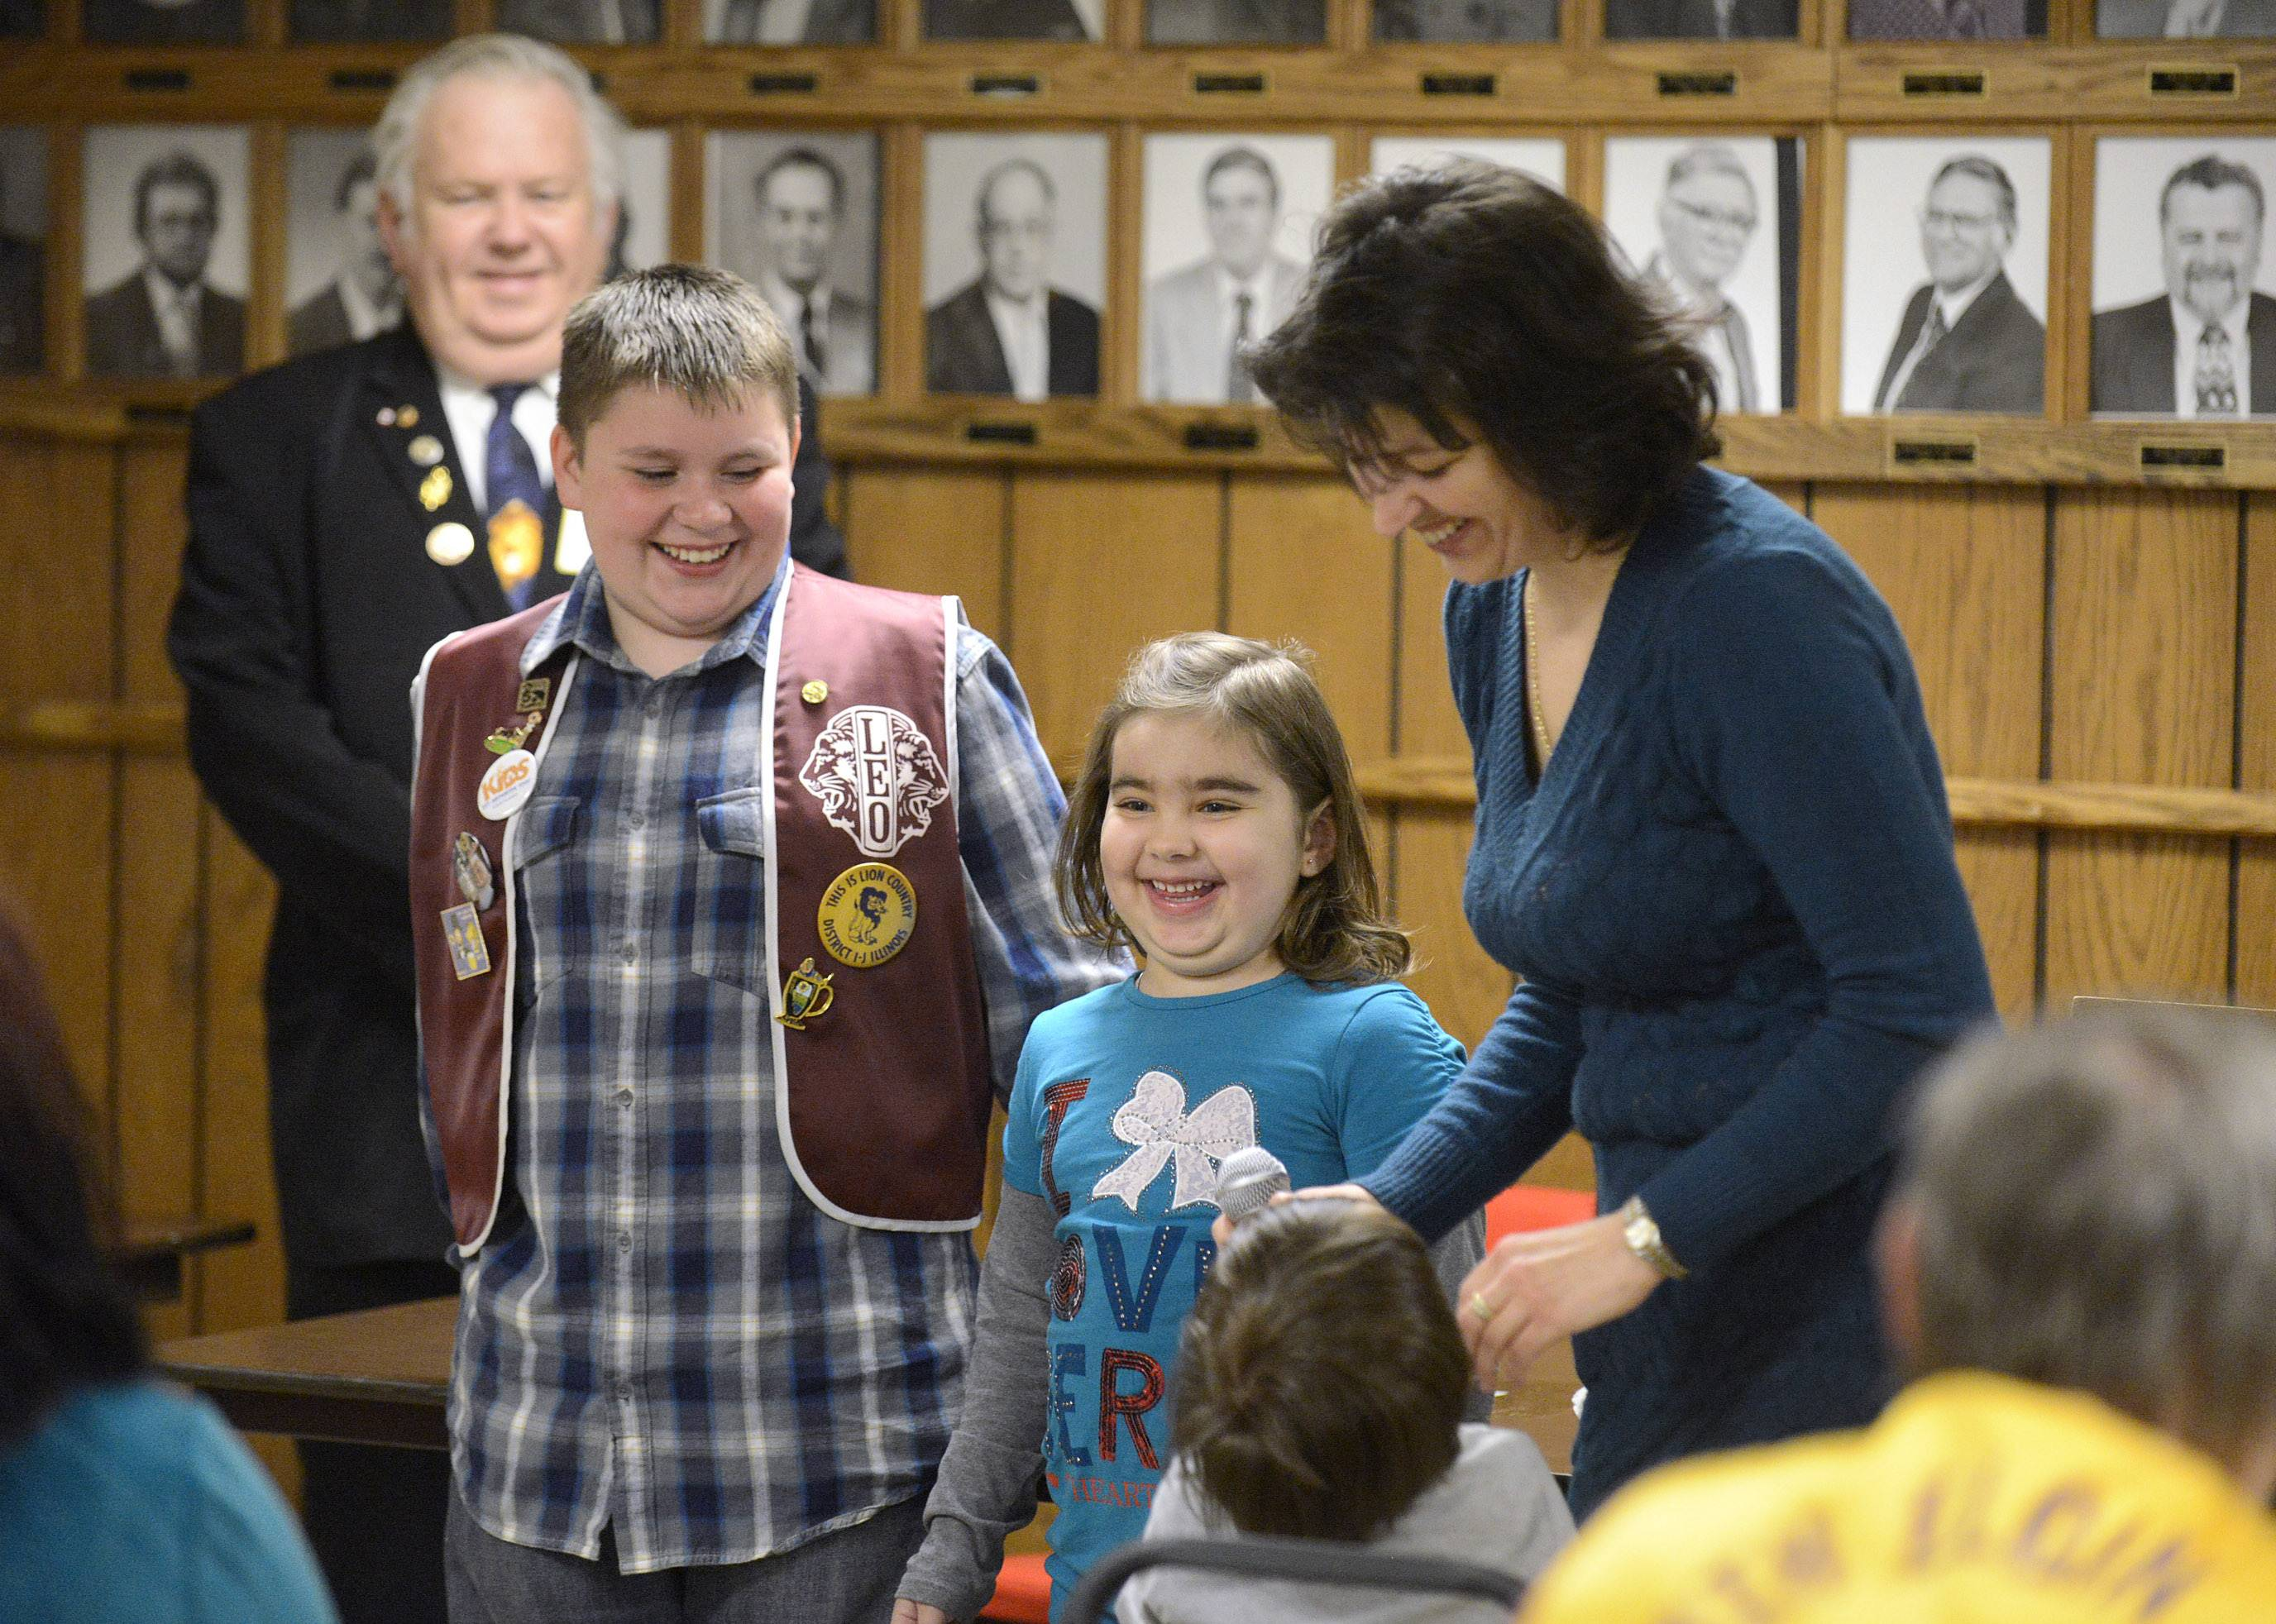 Dylan Snyder, 11, a fifth-grade student at Willard Elementary School, presents a check for nearly $4,000 to Maria Serban, 6, her mother, Elena, and brother, Victor, 3½, at the South Elgin Lions Club on Wednesday. All live in South Elgin. Maria, a first-grader at Willard, has a rare form of arthritis. Dylan raised funds to help Maria with a spaghetti dinner and auction held last month at the club where his great-grandfather Leo Snyder, standing in background, is a member.